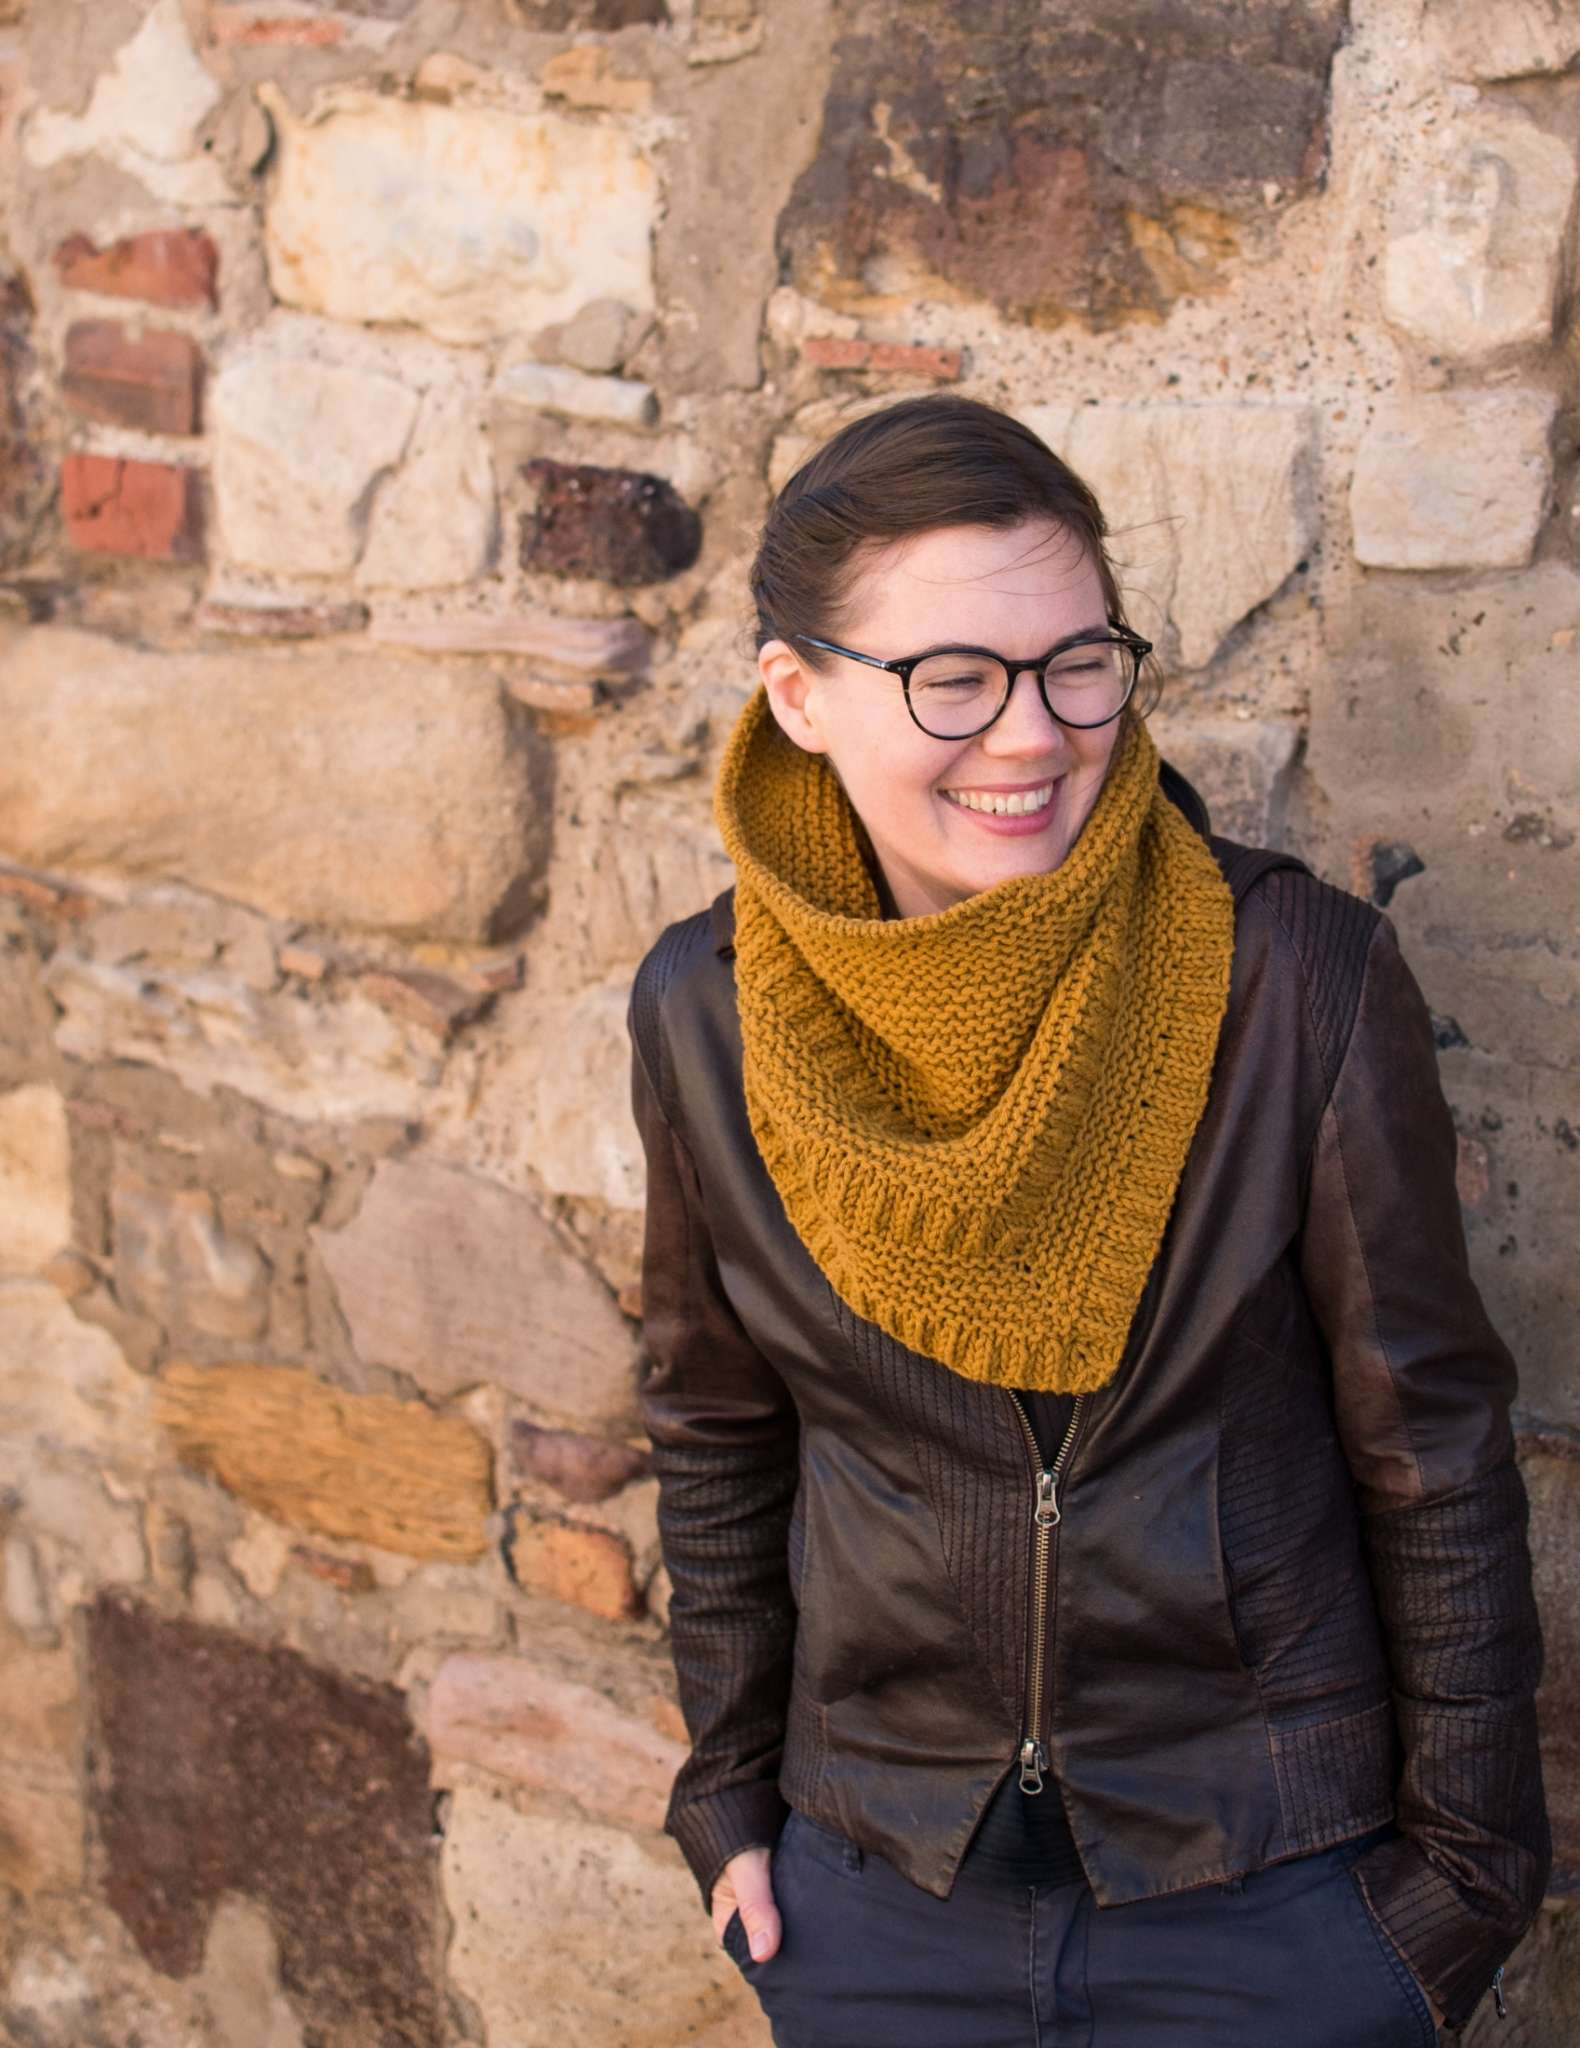 A white woman with tied back brown hair and glasses leans against a brick wall. She is laughing at something off camera, and wears a chunky golden cowl and leather jacket.